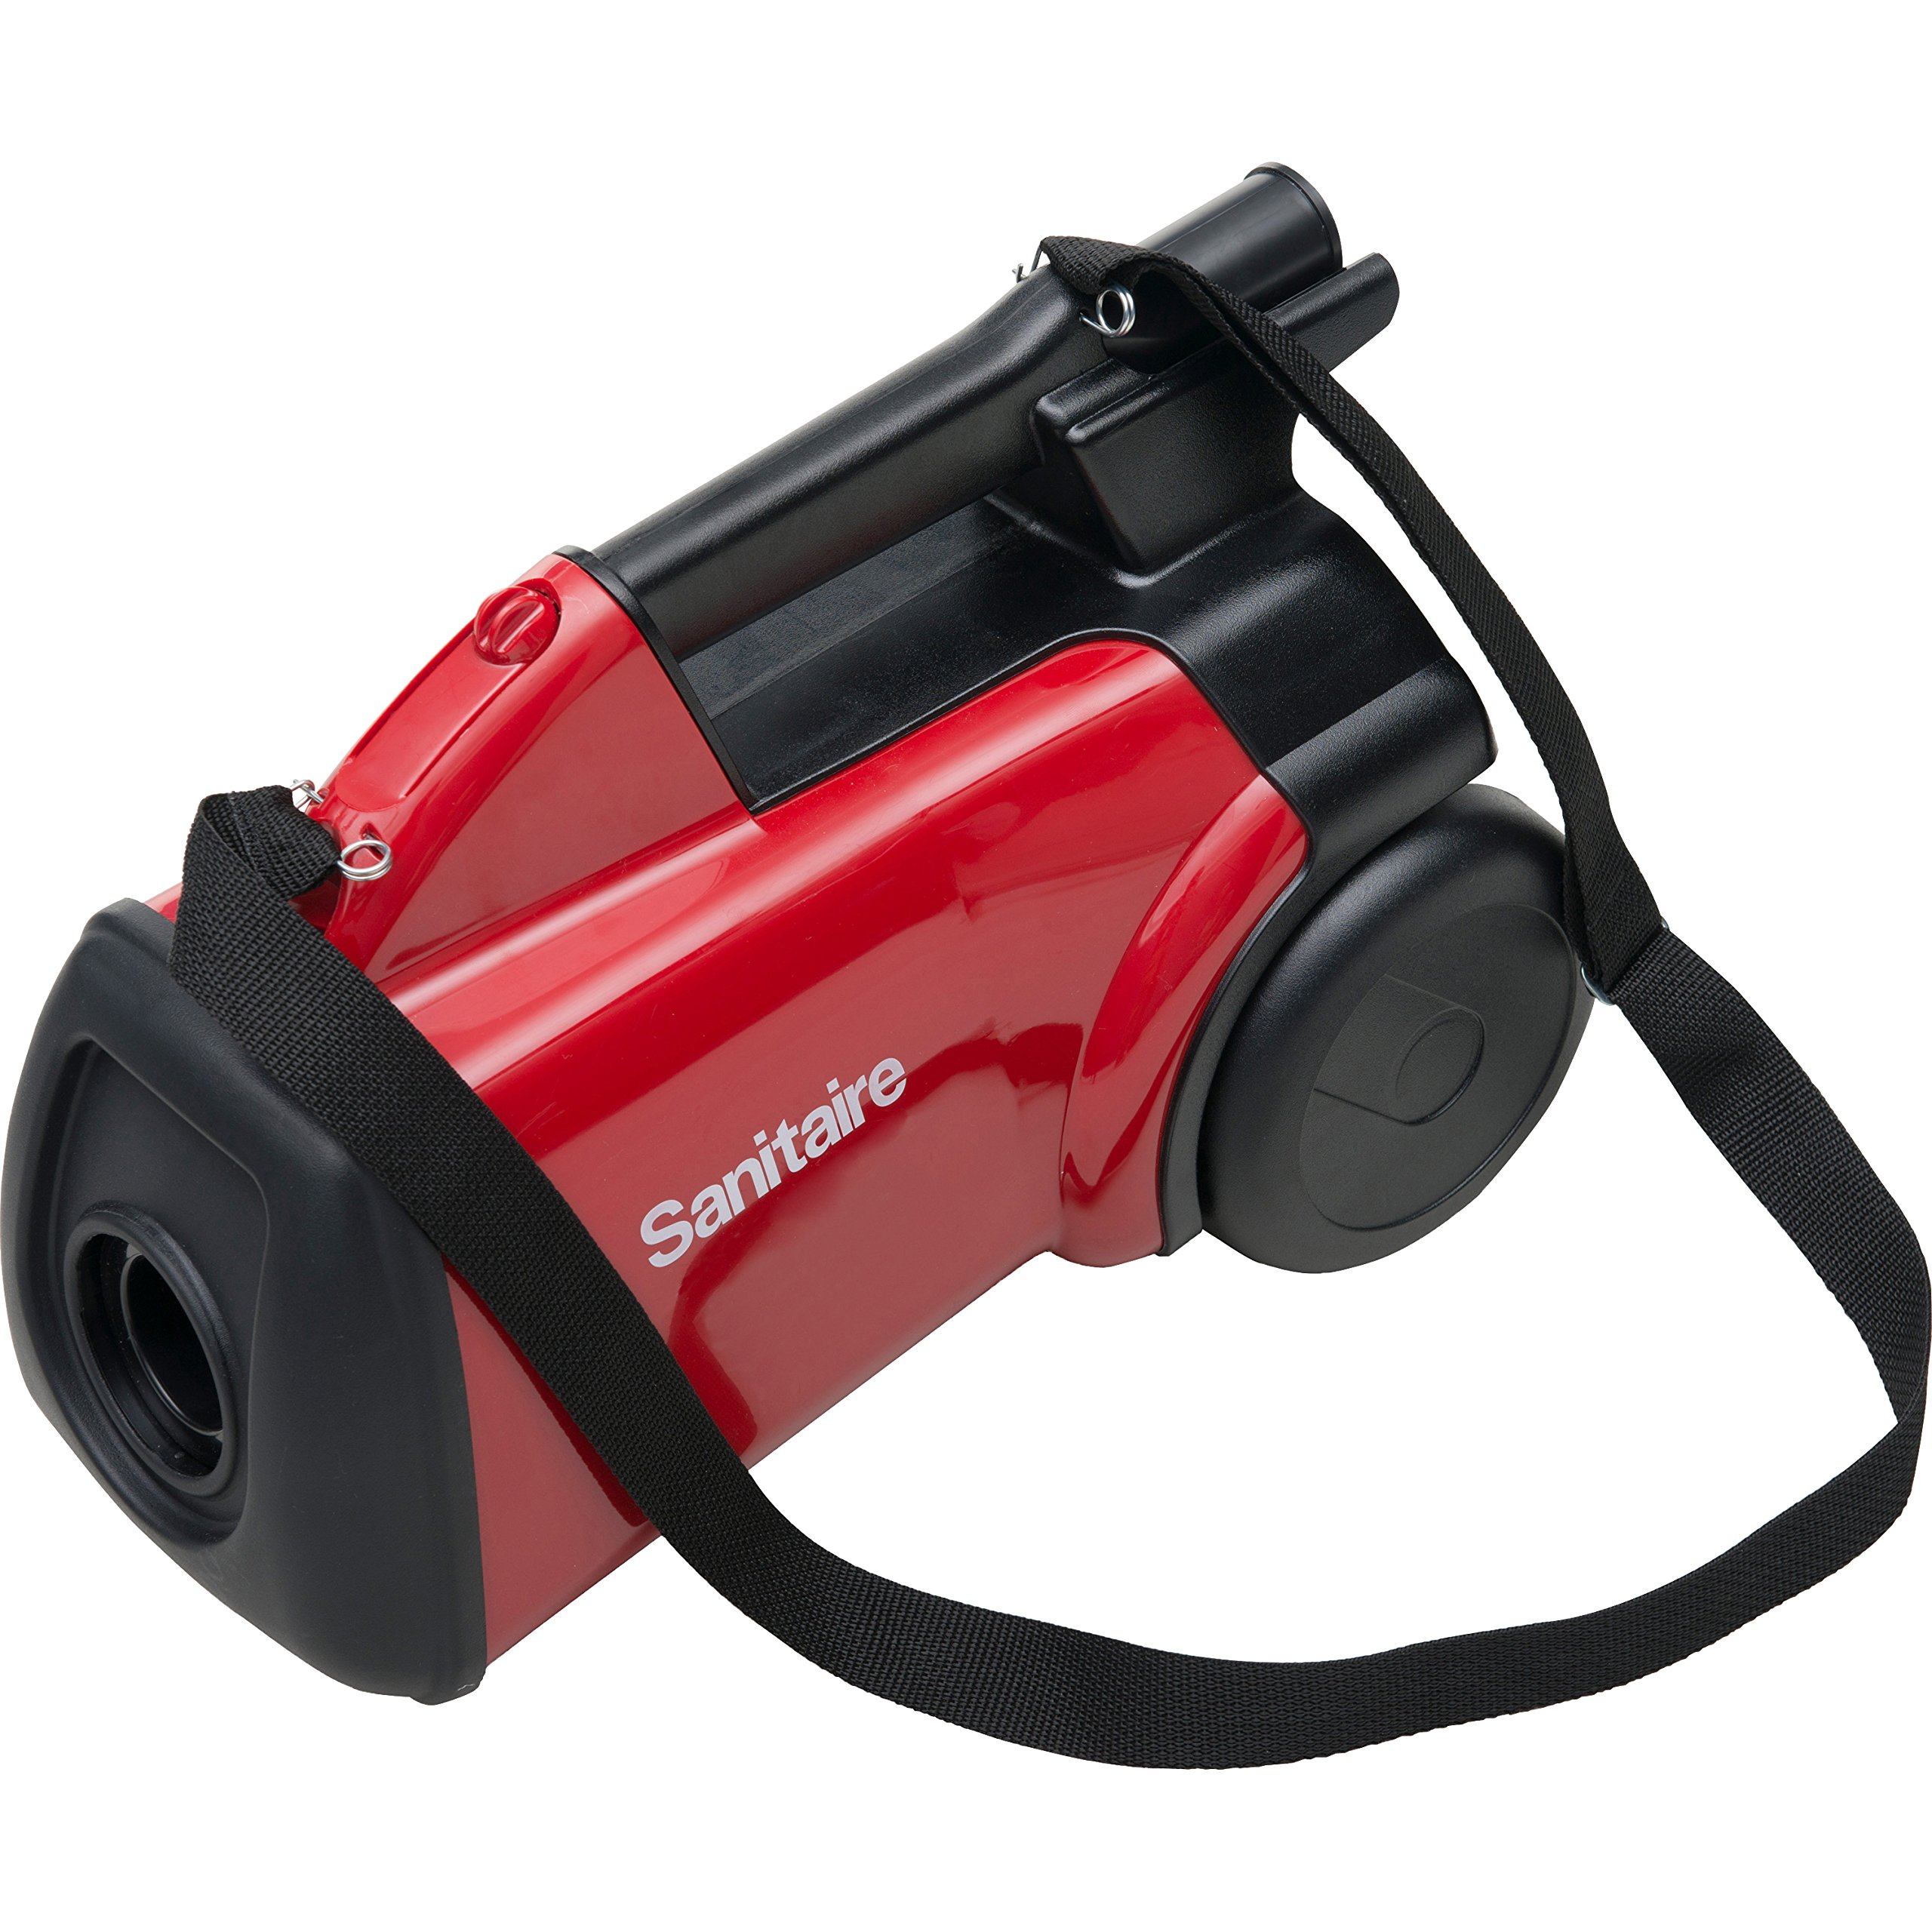 Sanitaire SC3683B Commercial Canister Vacuum, Red product image